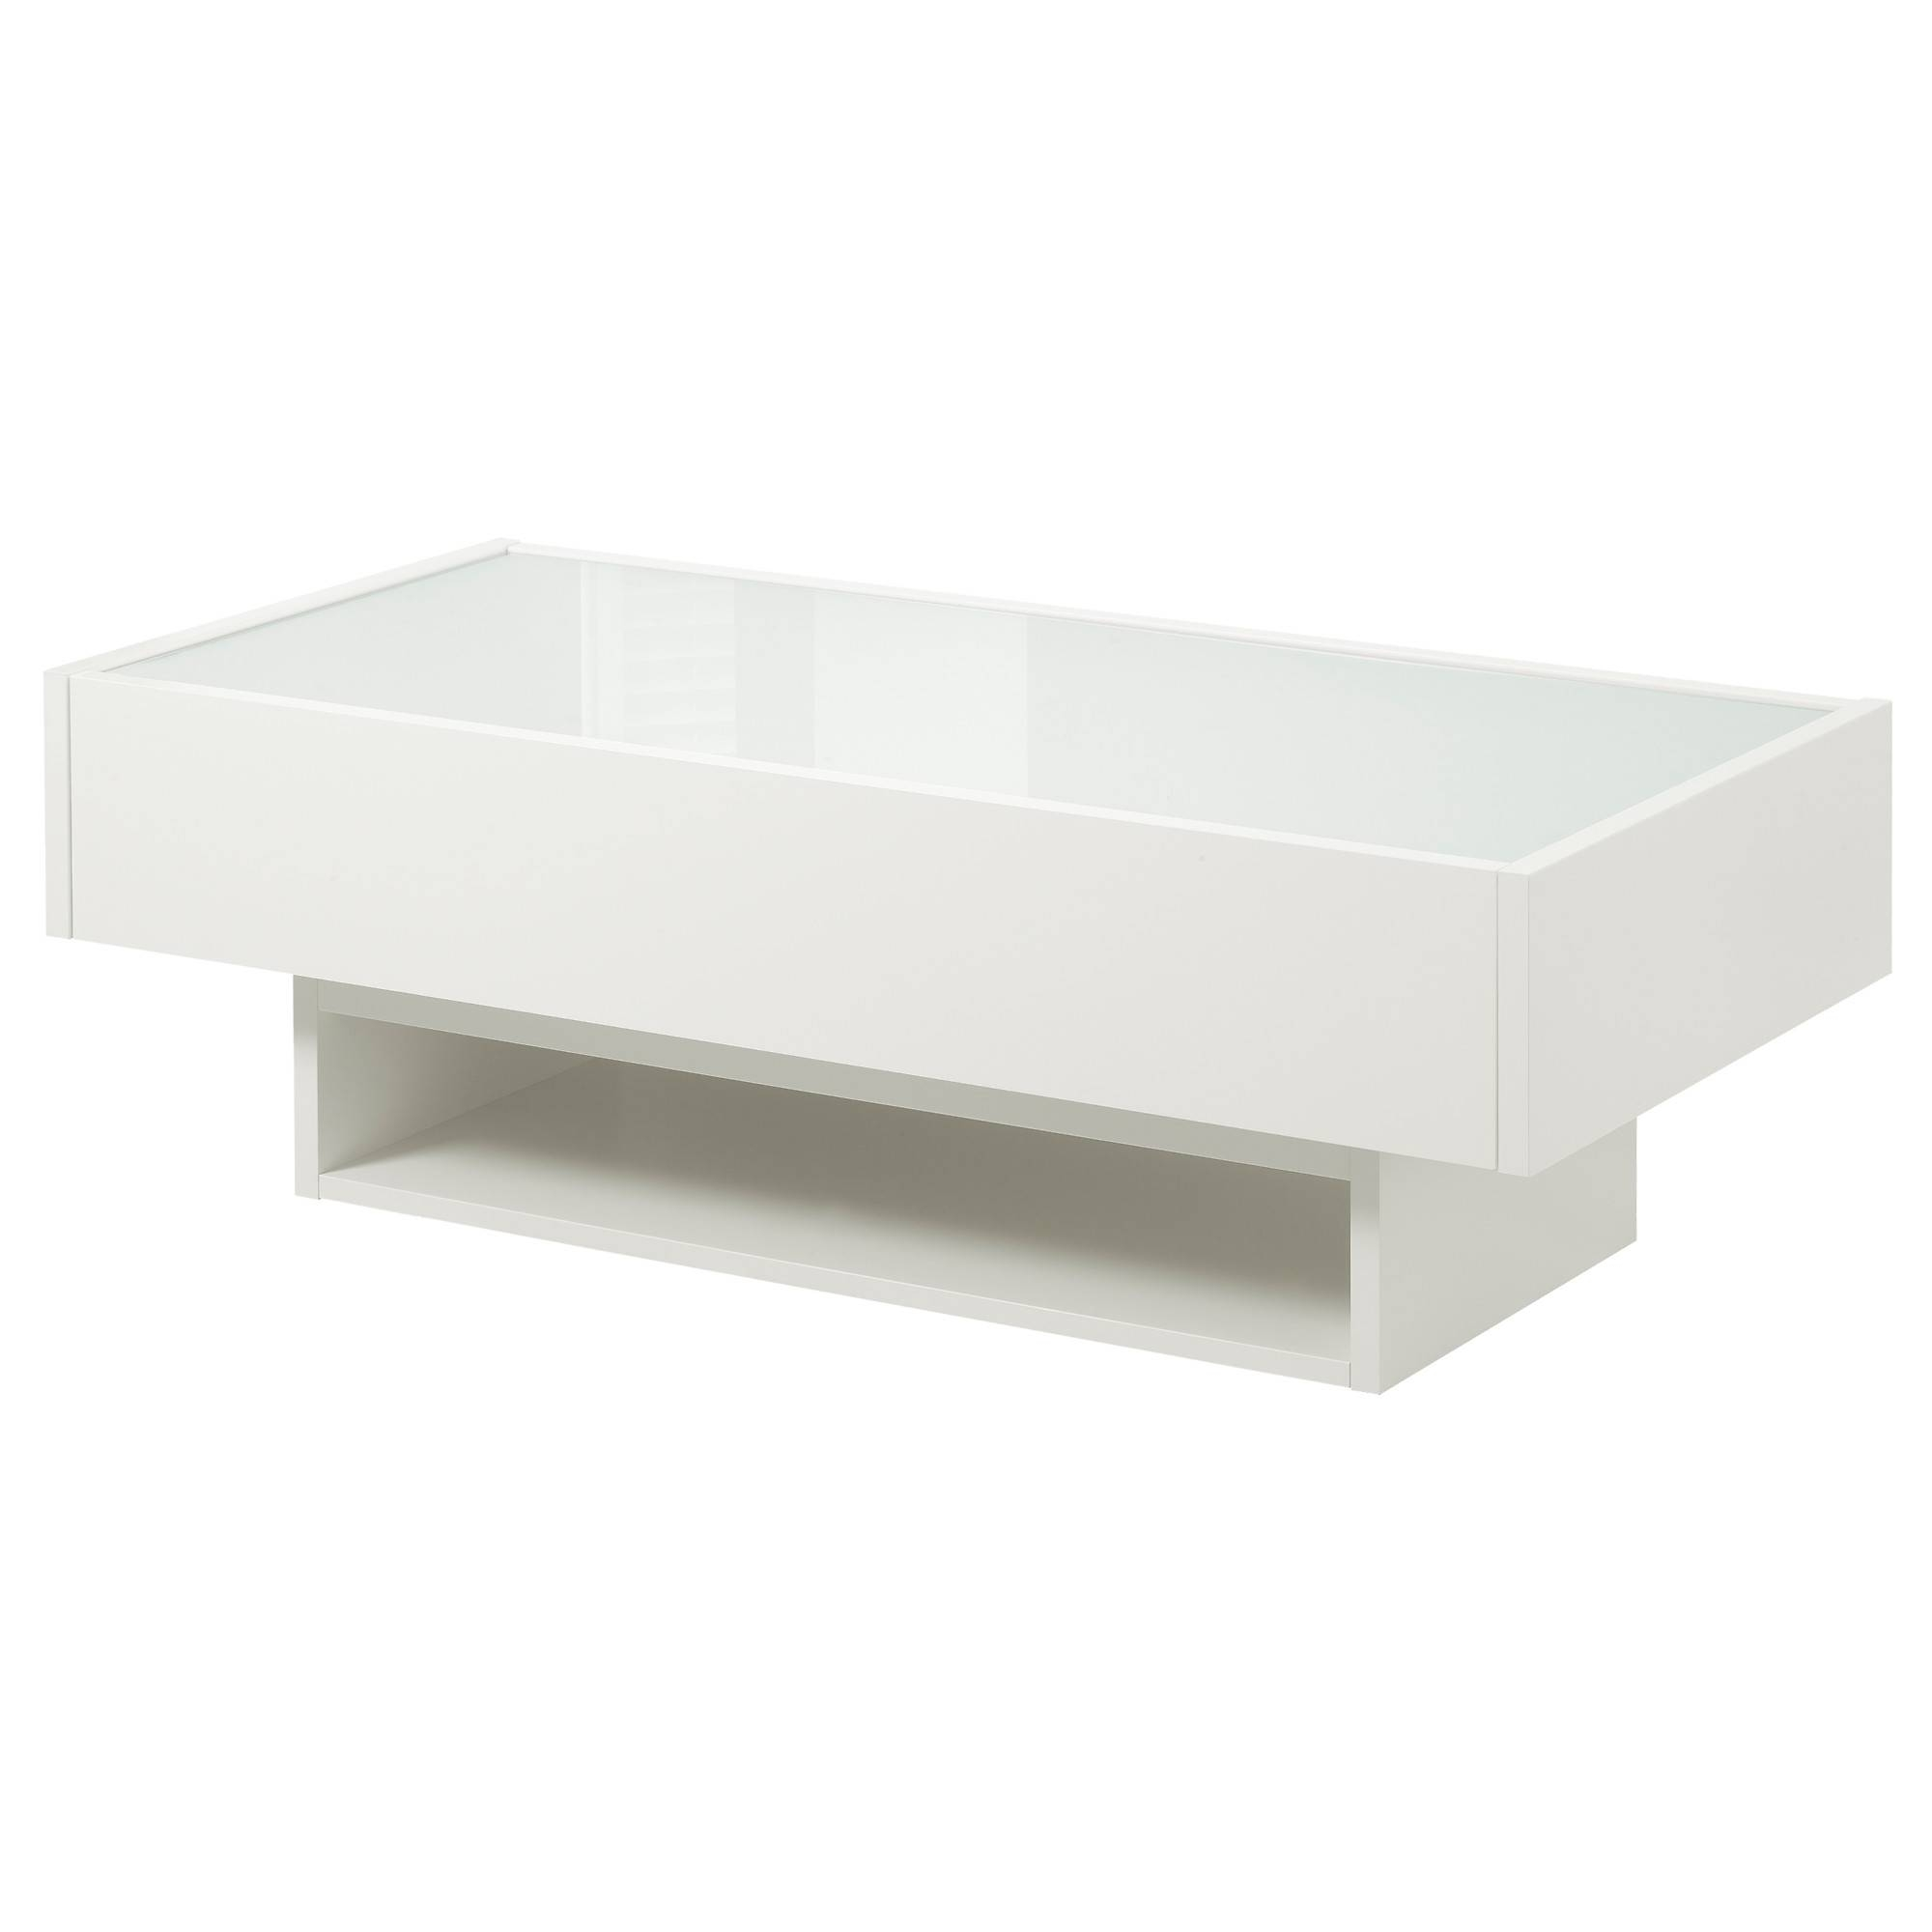 Coffee Table White Square Coffee Table For Noguchi Coffee Table with White Square Coffee Table (Image 2 of 30)